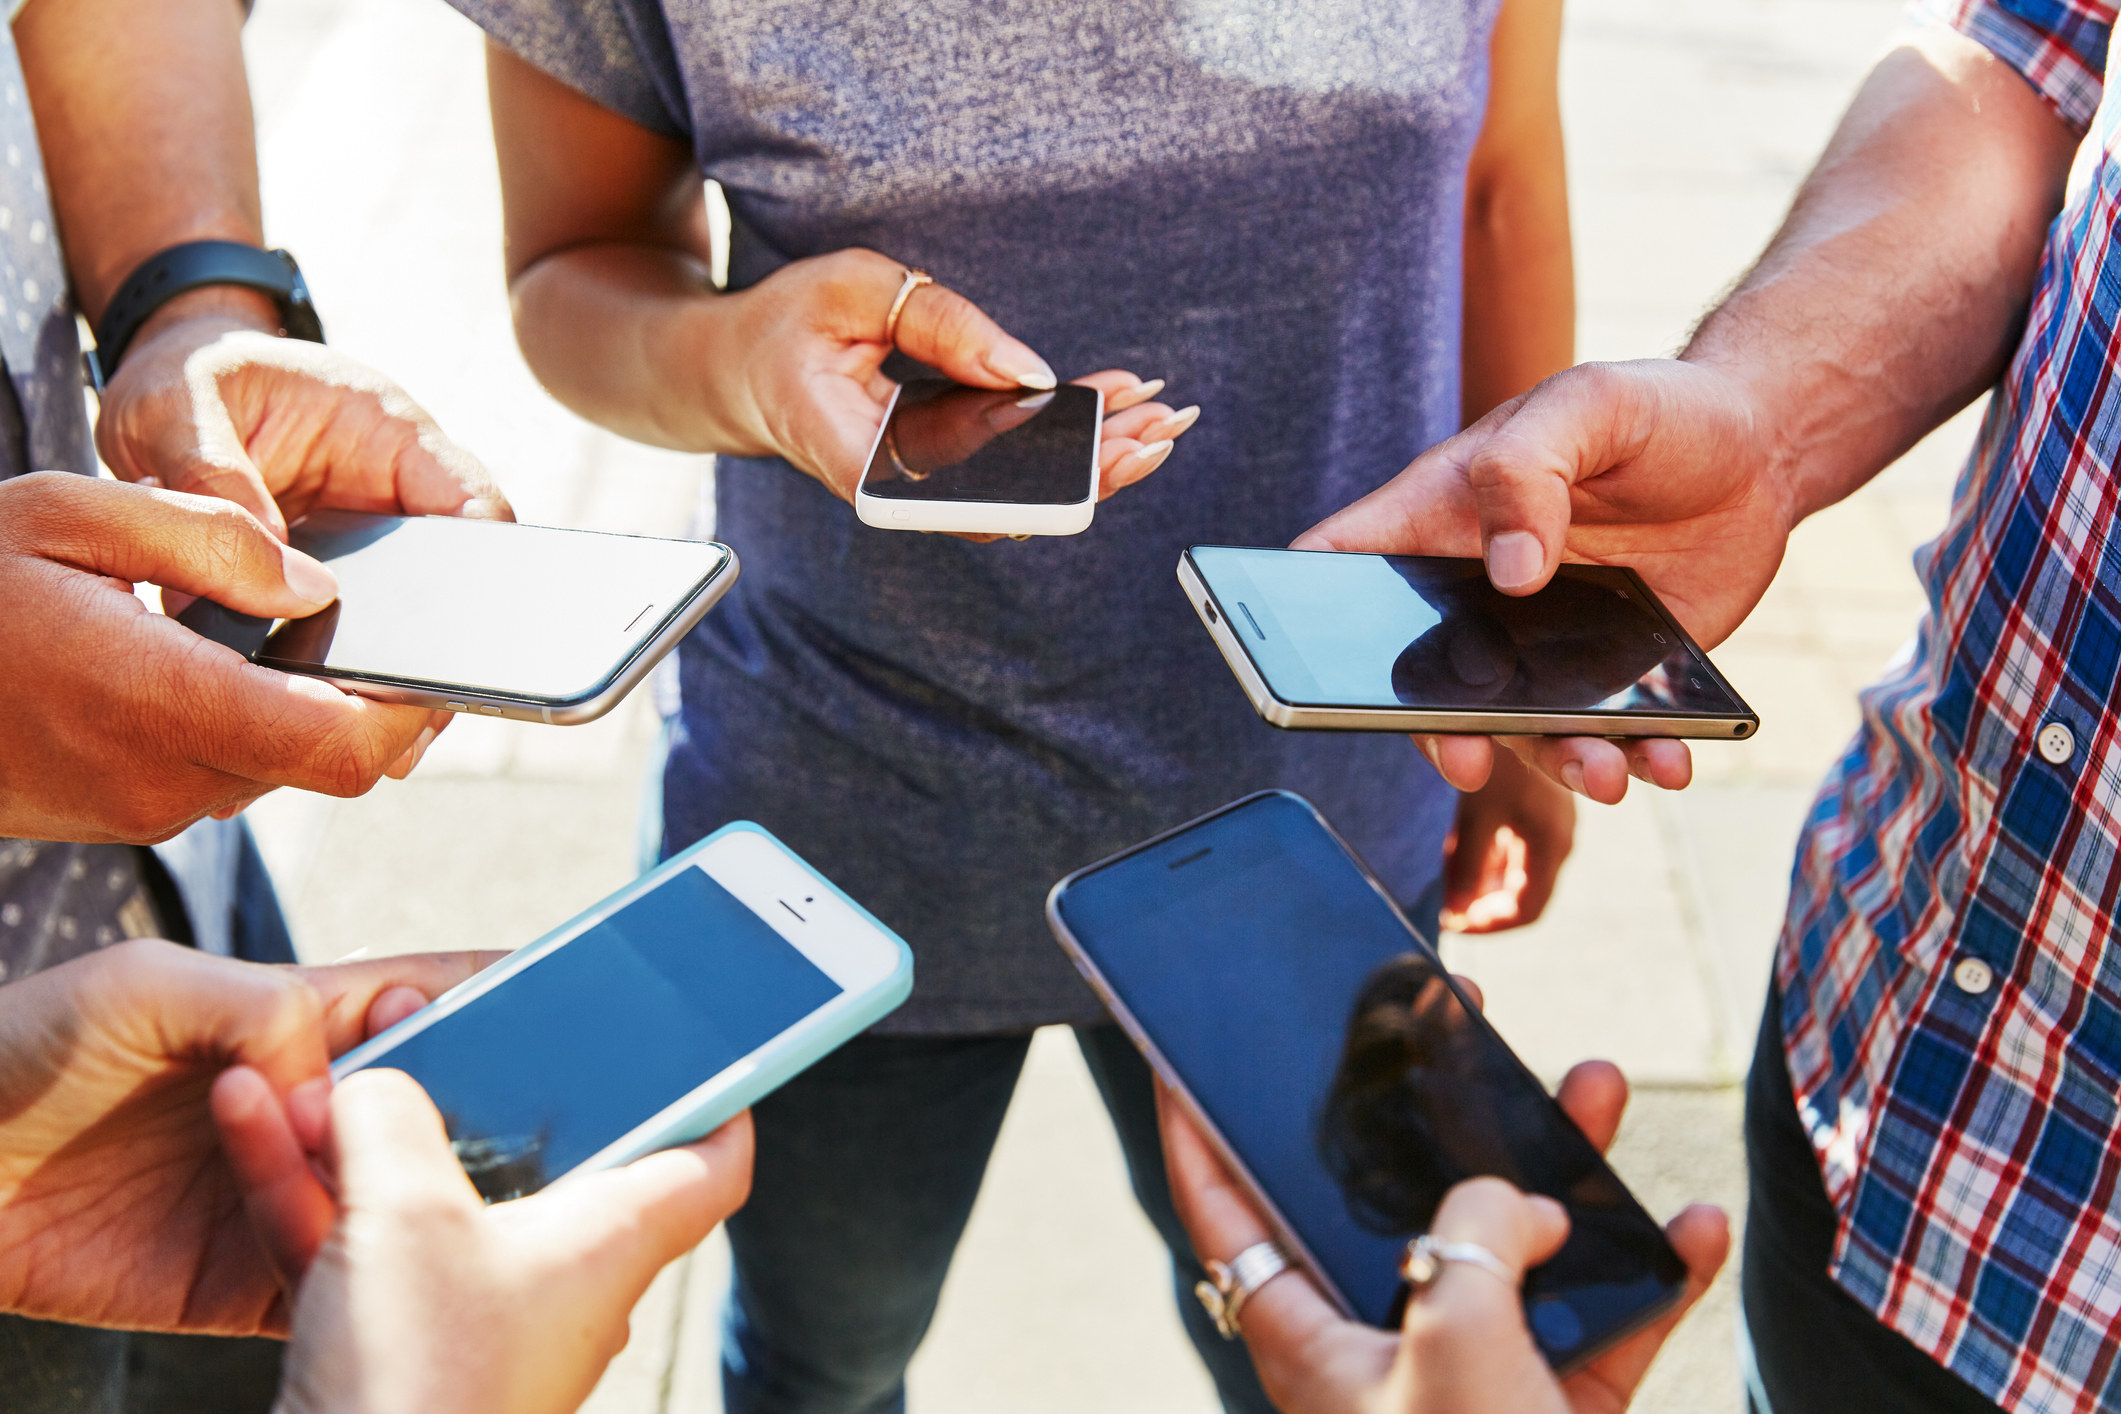 A group of hands holding smartphones in a circle.